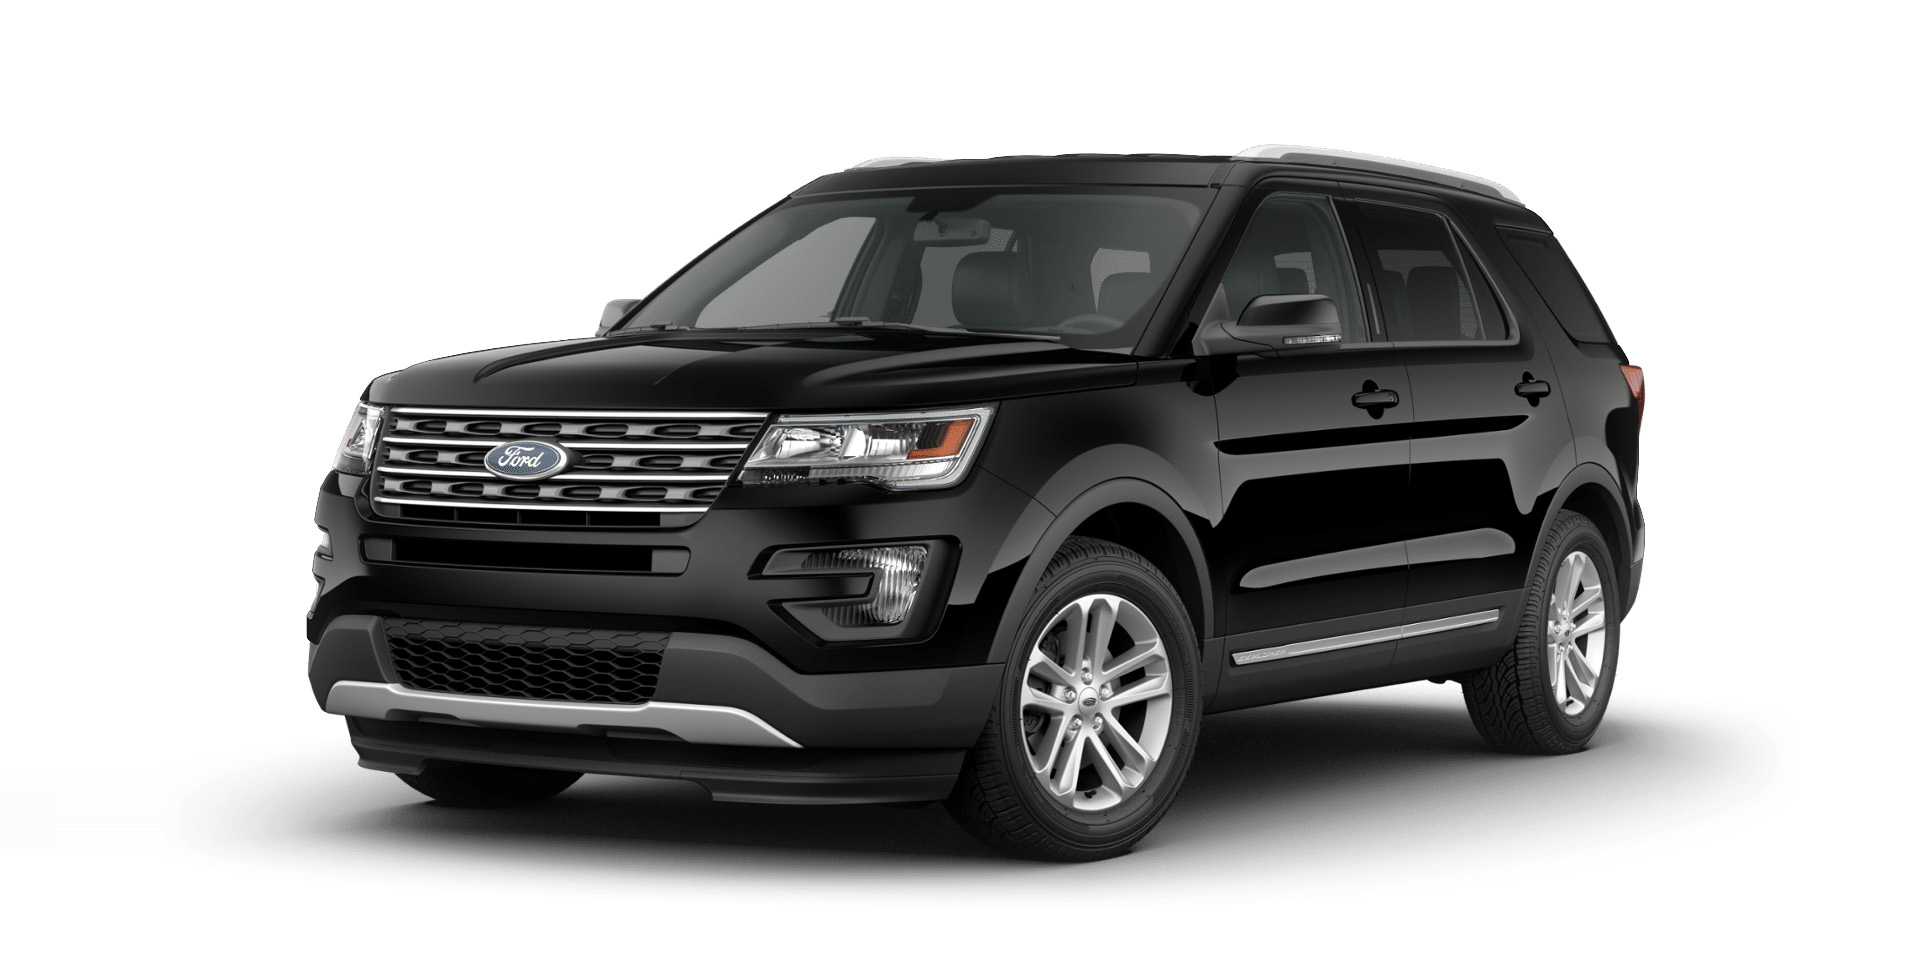 Vehicles With 3rd Row Seating >> 17 Reg Ford Explorer XLT Petrol – Luxury Seven Seater ...